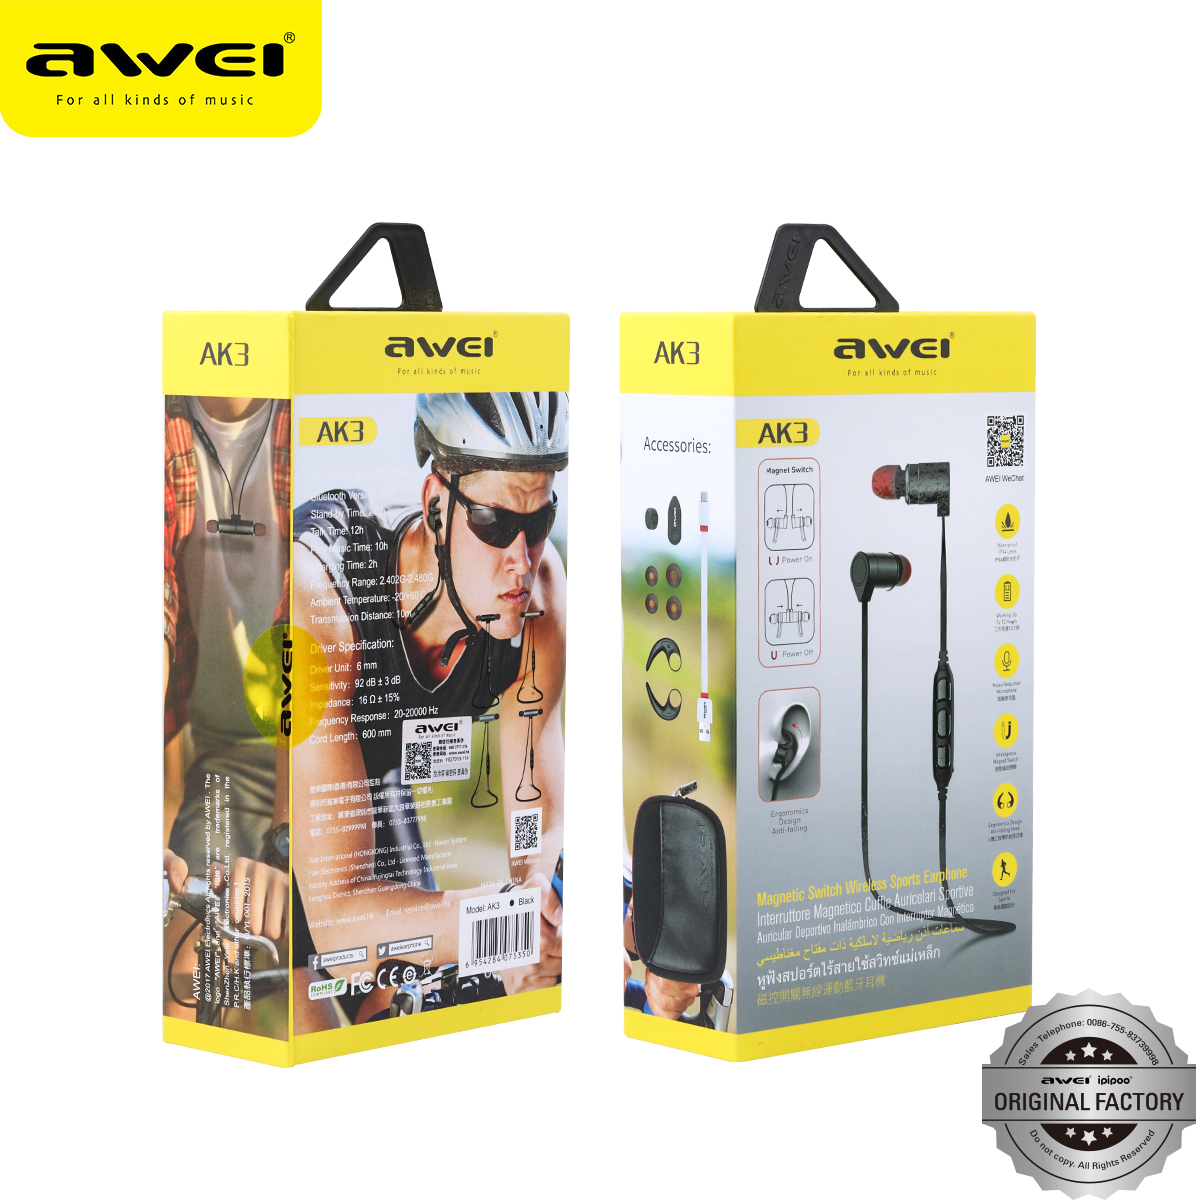 Awei brand name earphones blluetooth wireless headphones 2017